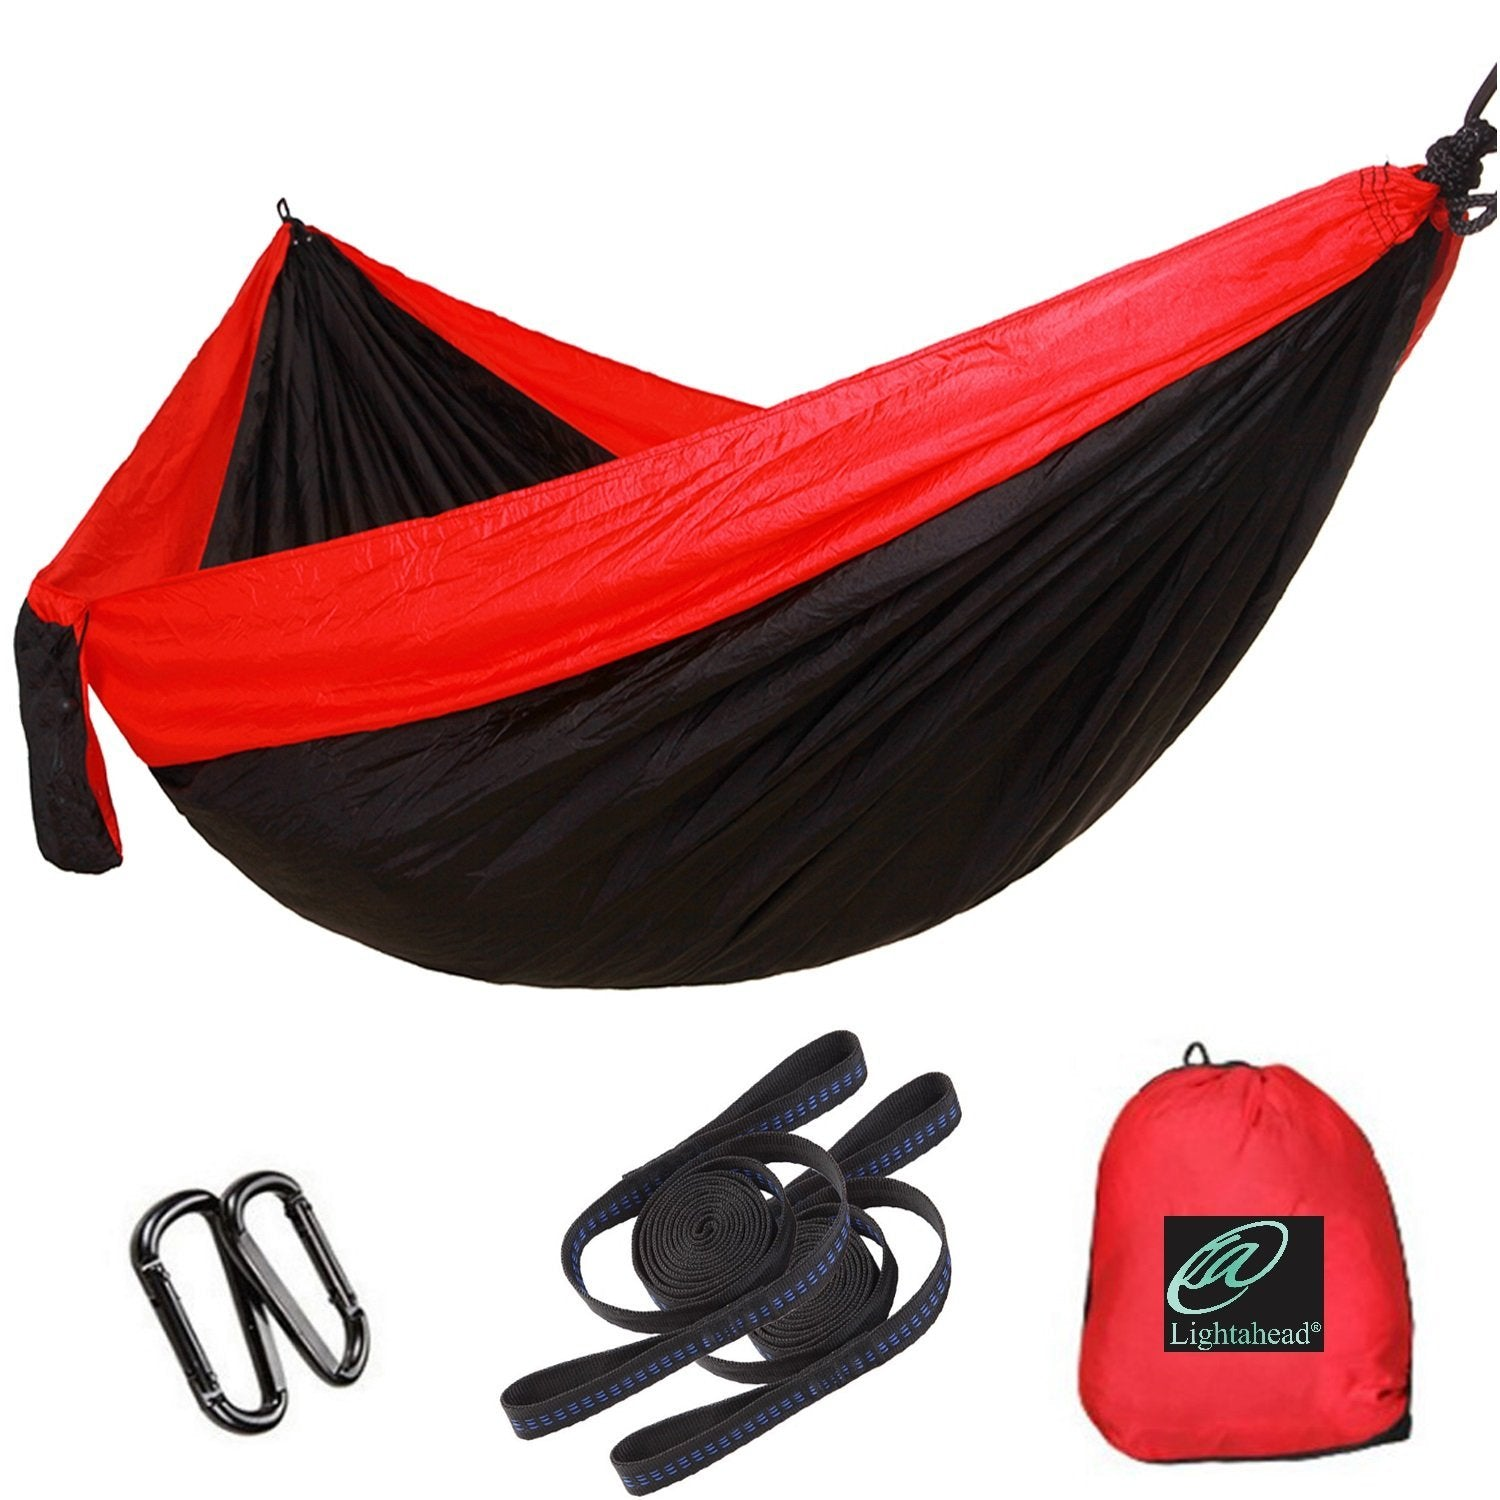 Lightahead Double Parachute Portable Camping Hammock Include 2 Strap with Loops,Carabiner– Black/Red